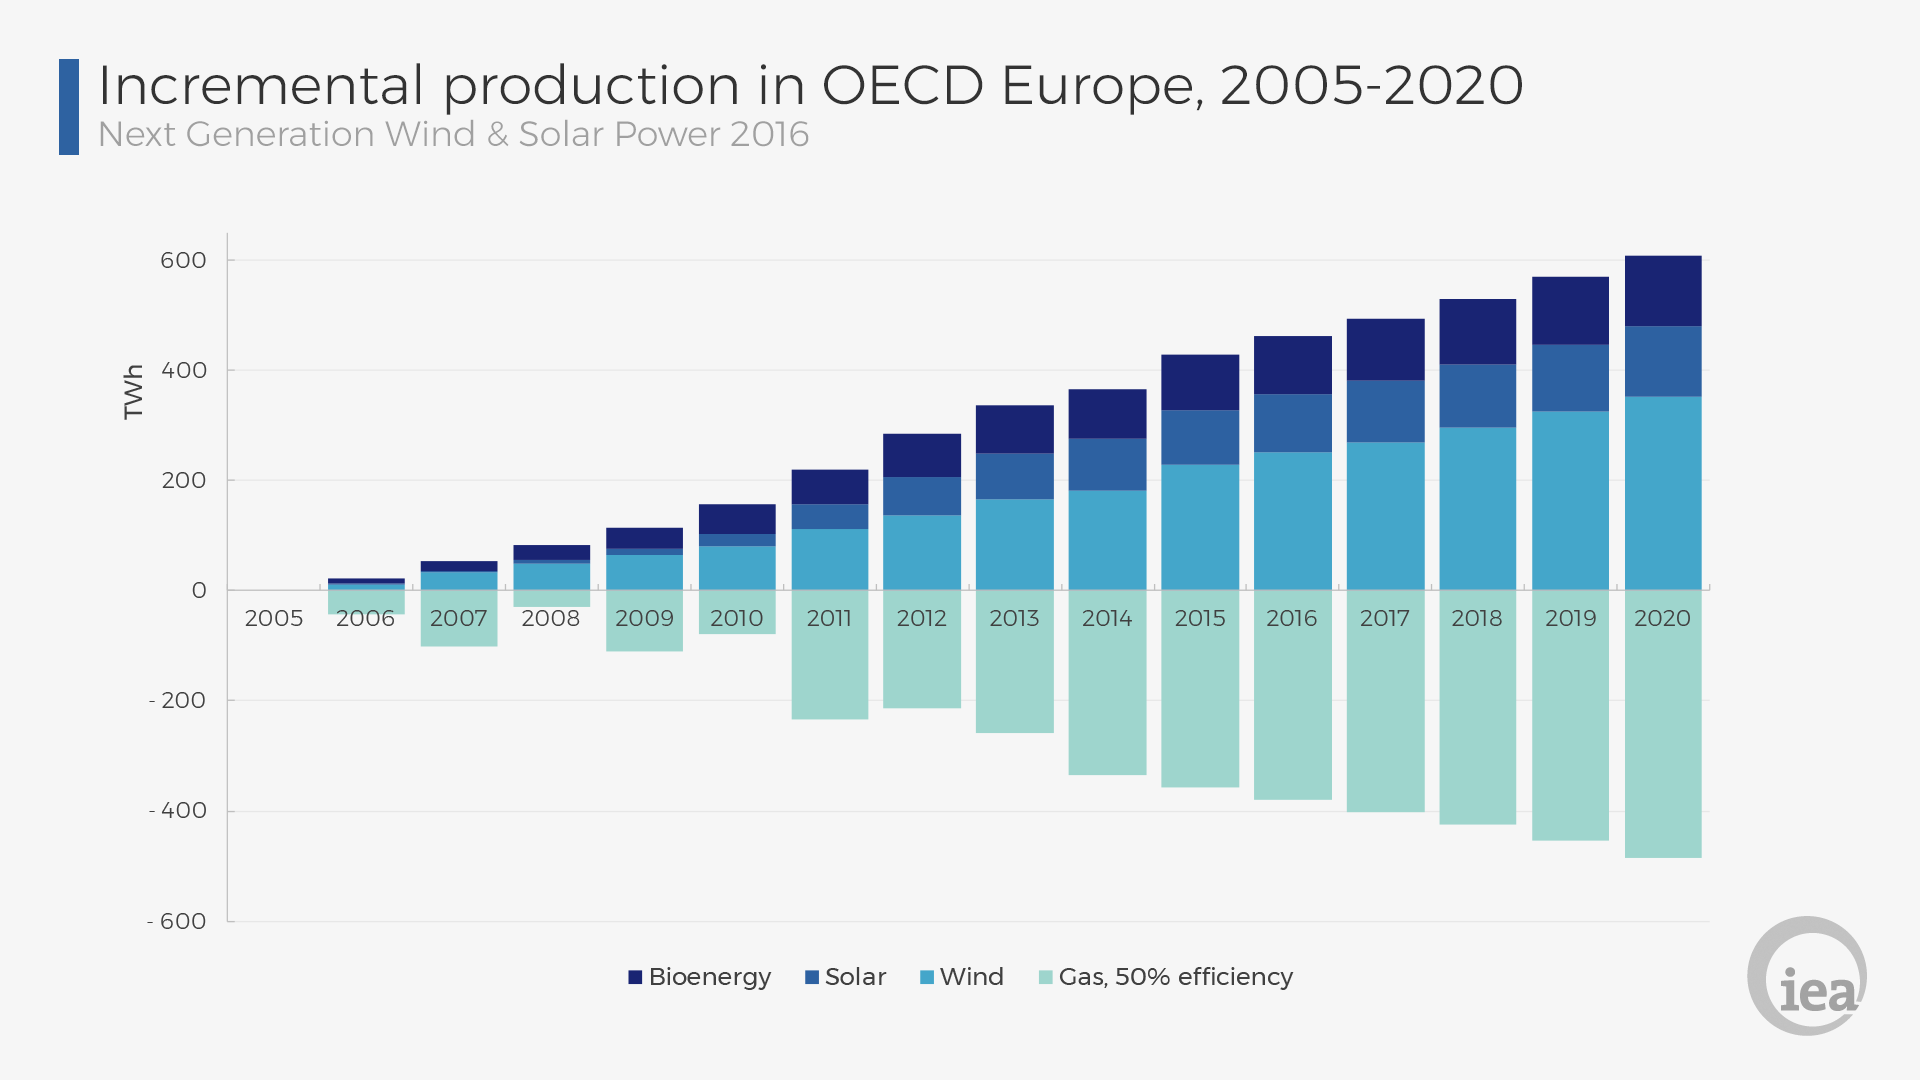 Incremental Production Of Renewable Electricity And Natural Gas In OECD  Europe - Natural Gas PNG HD